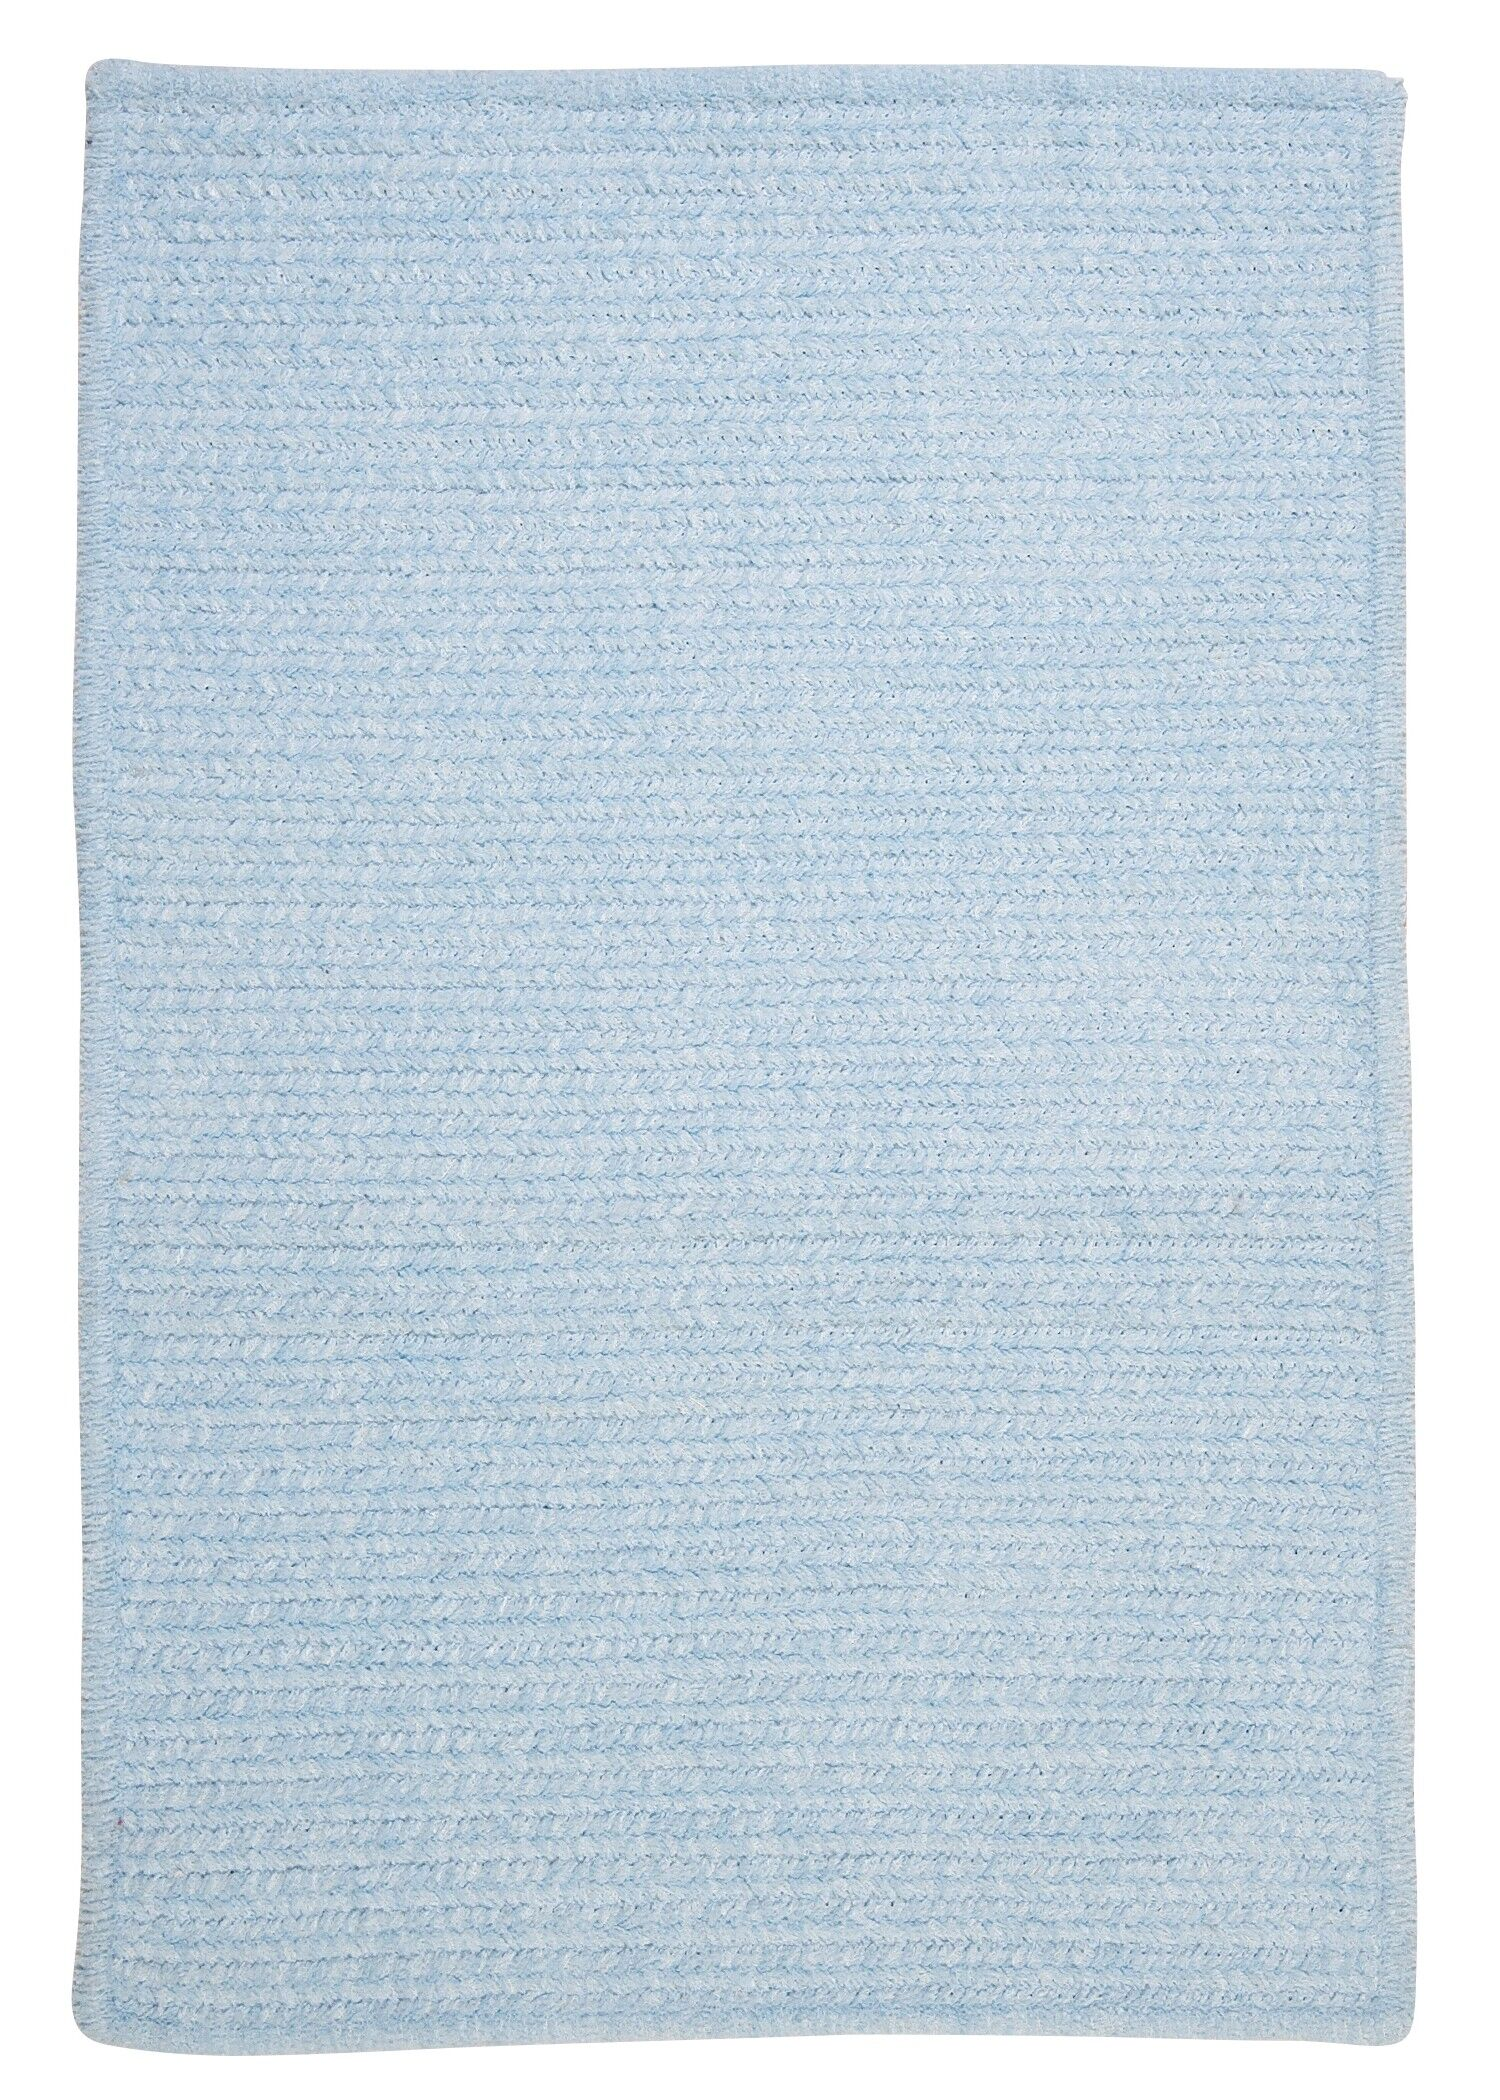 Gibbons Sky Blue Indoor/Outdoor Area Rug Rug Size: Rectangle 3' x 5'